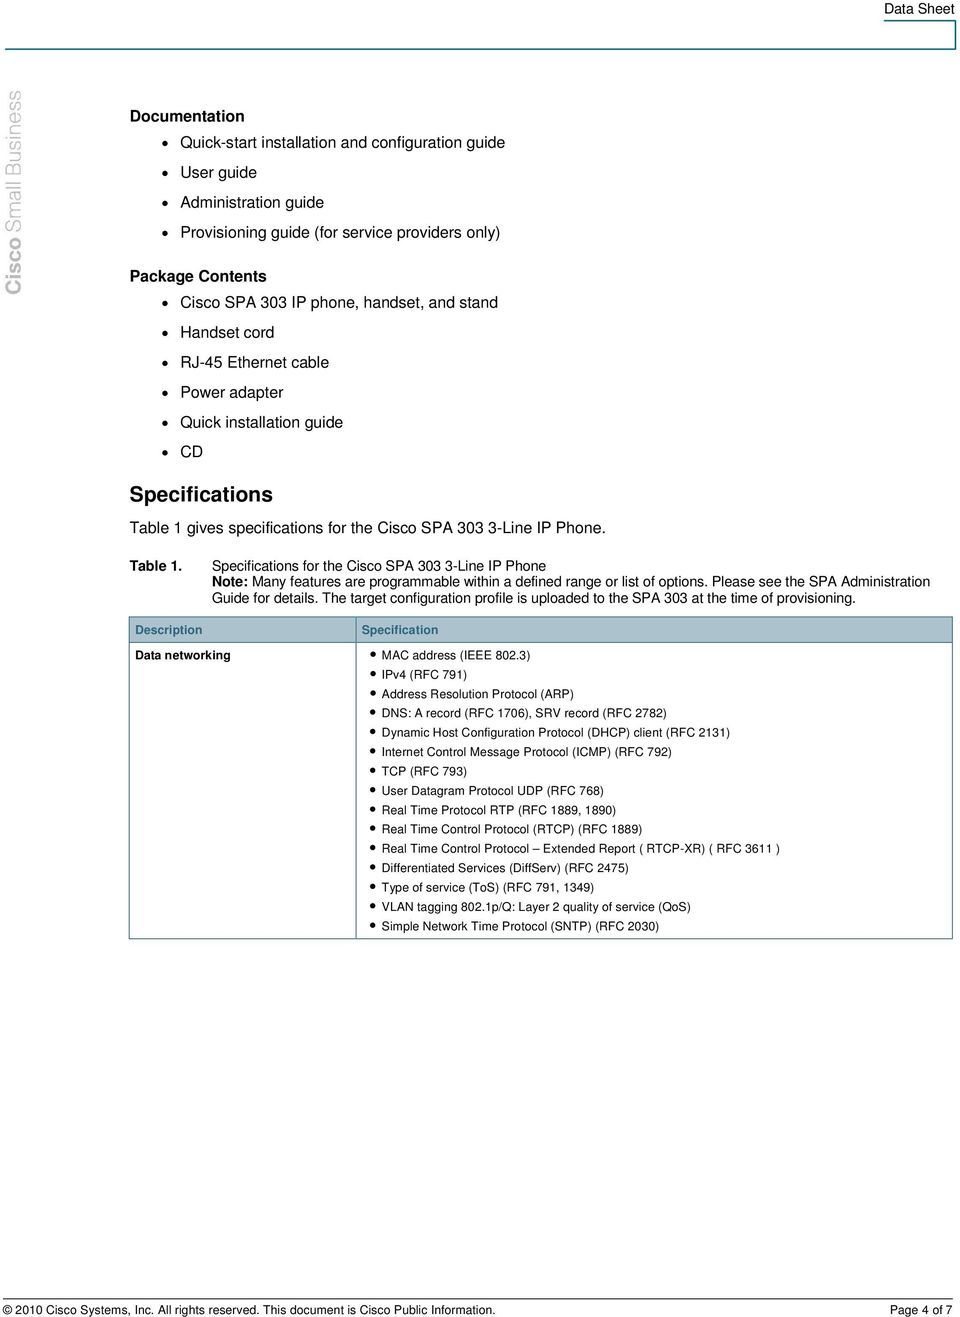 gives specifications for the Cisco SPA 303 3-Line IP Phone. Table 1.